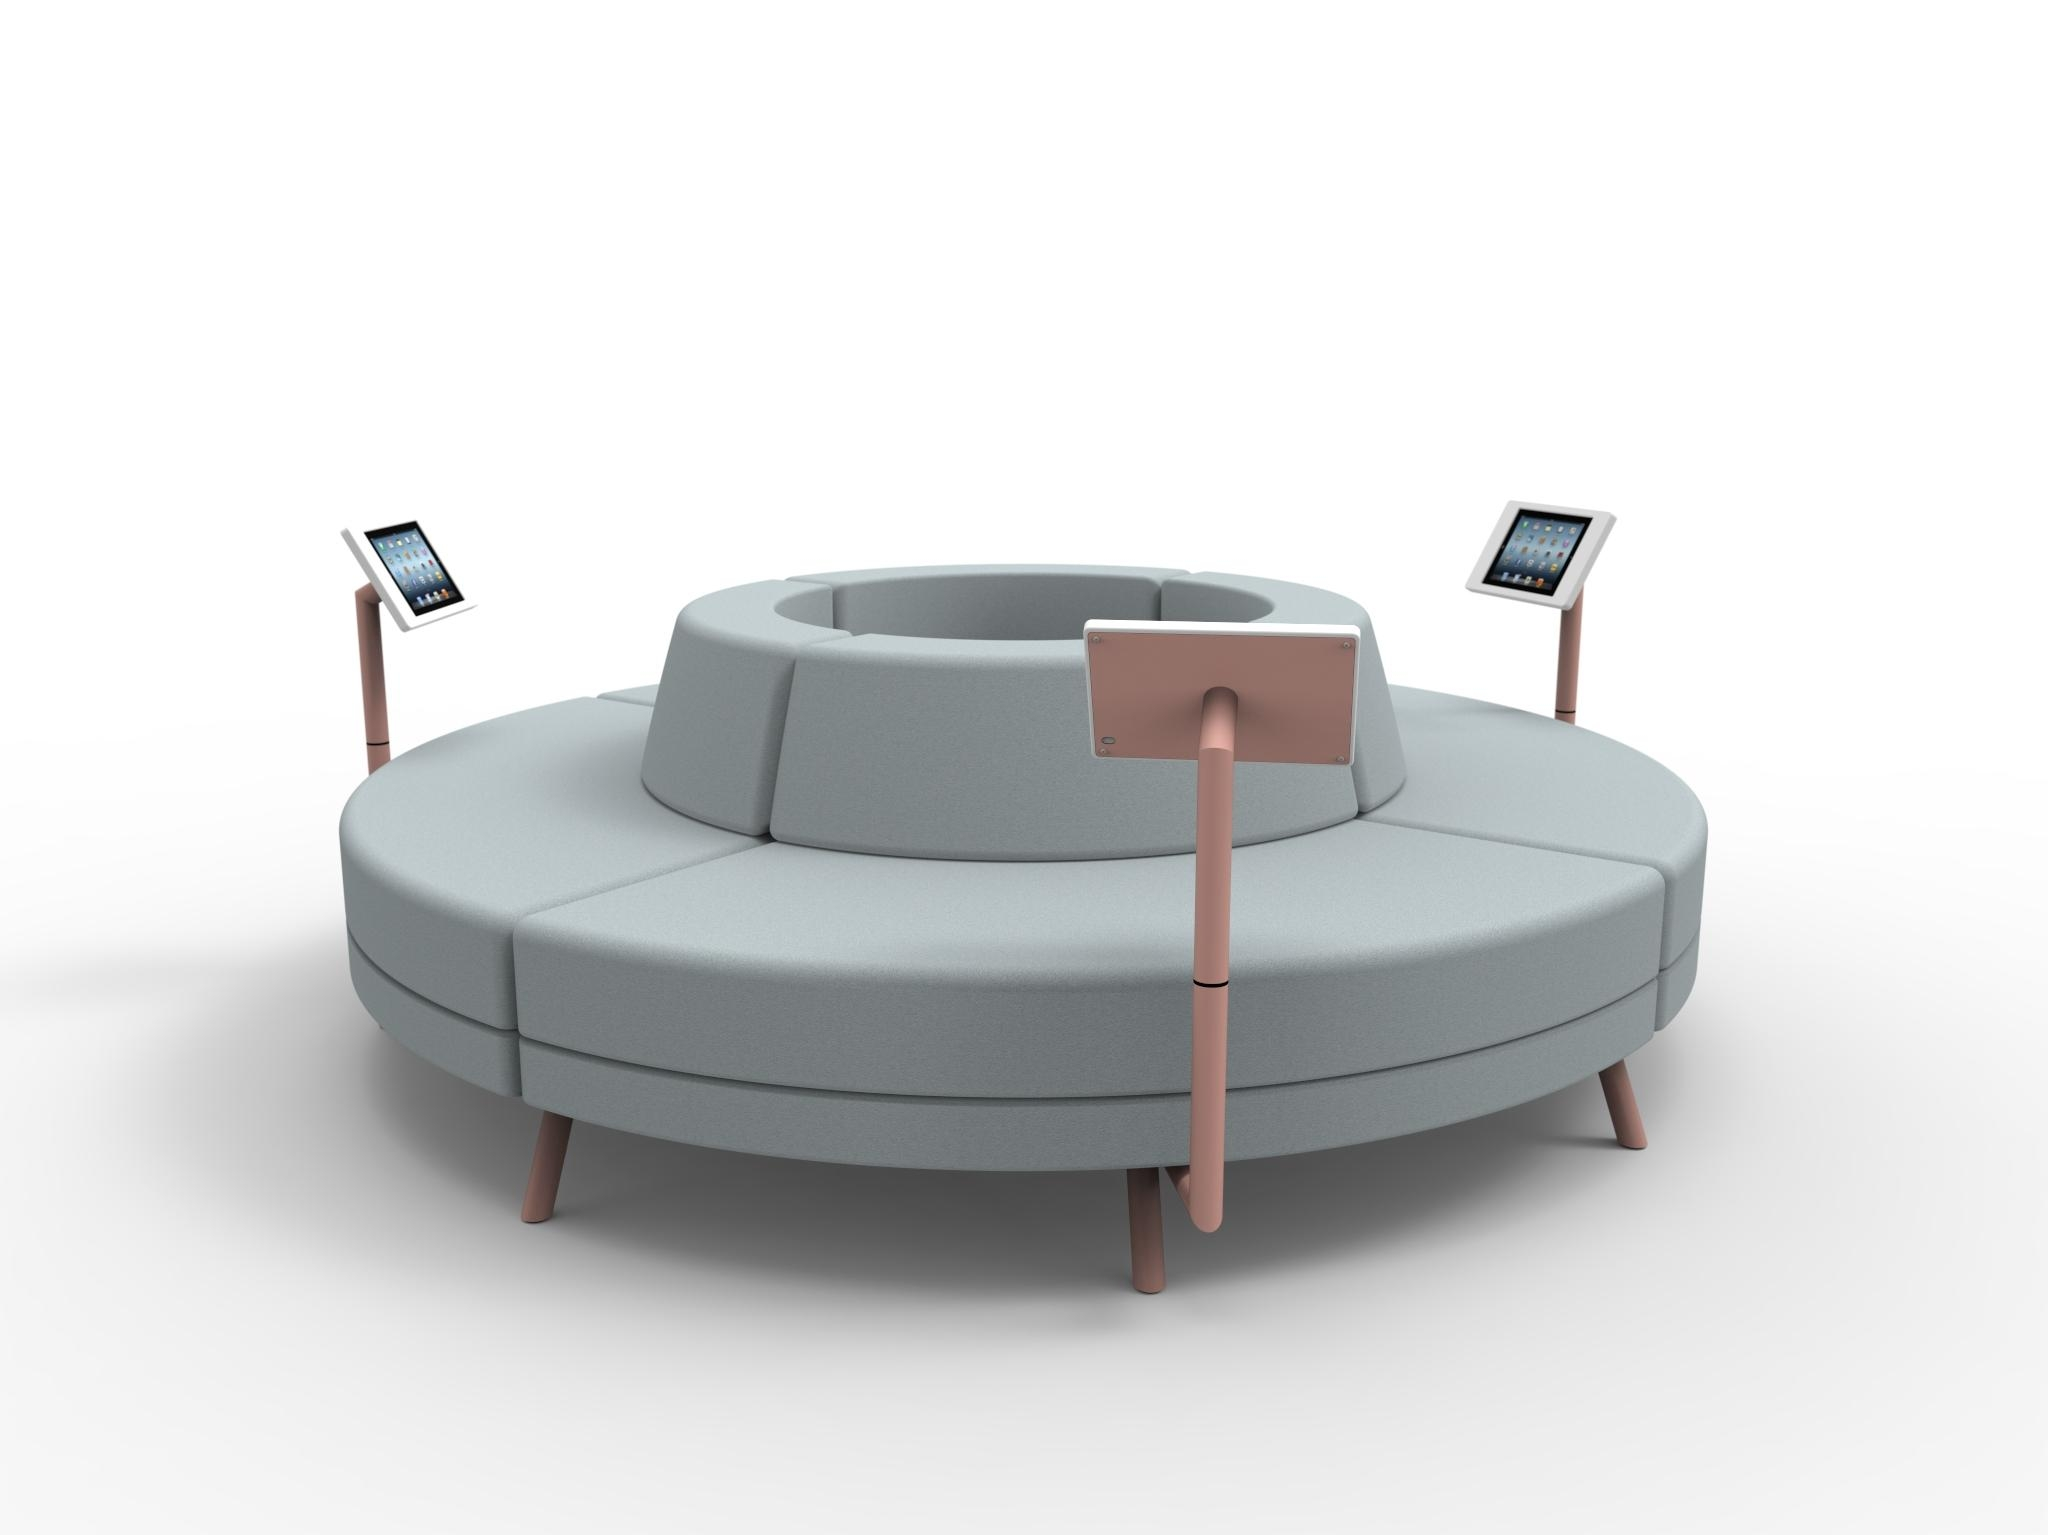 Furniture: Create Your Comfortable Living Room Decor With Round With Regard To Leather Modular Sectional Sofas (View 14 of 20)